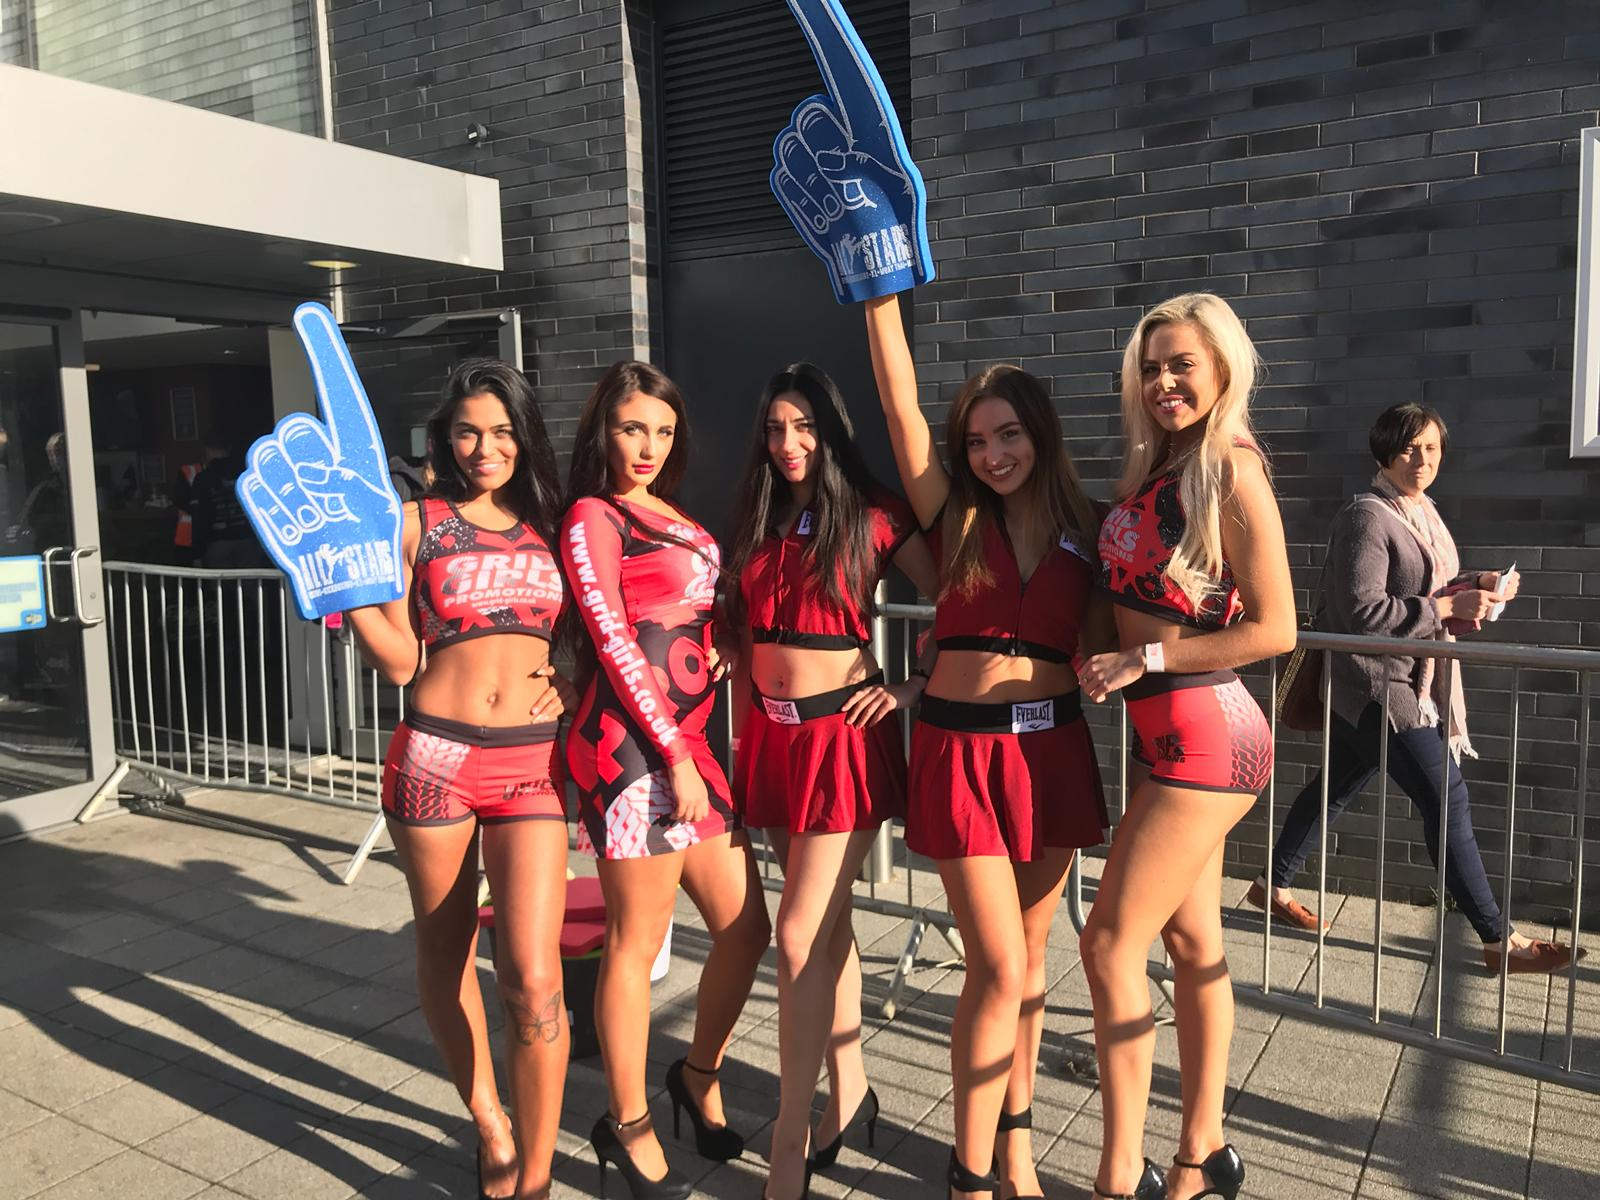 Ring Girls and Promo Models – All Stars Promotions – Milton Keynes – 29th Sept 2018